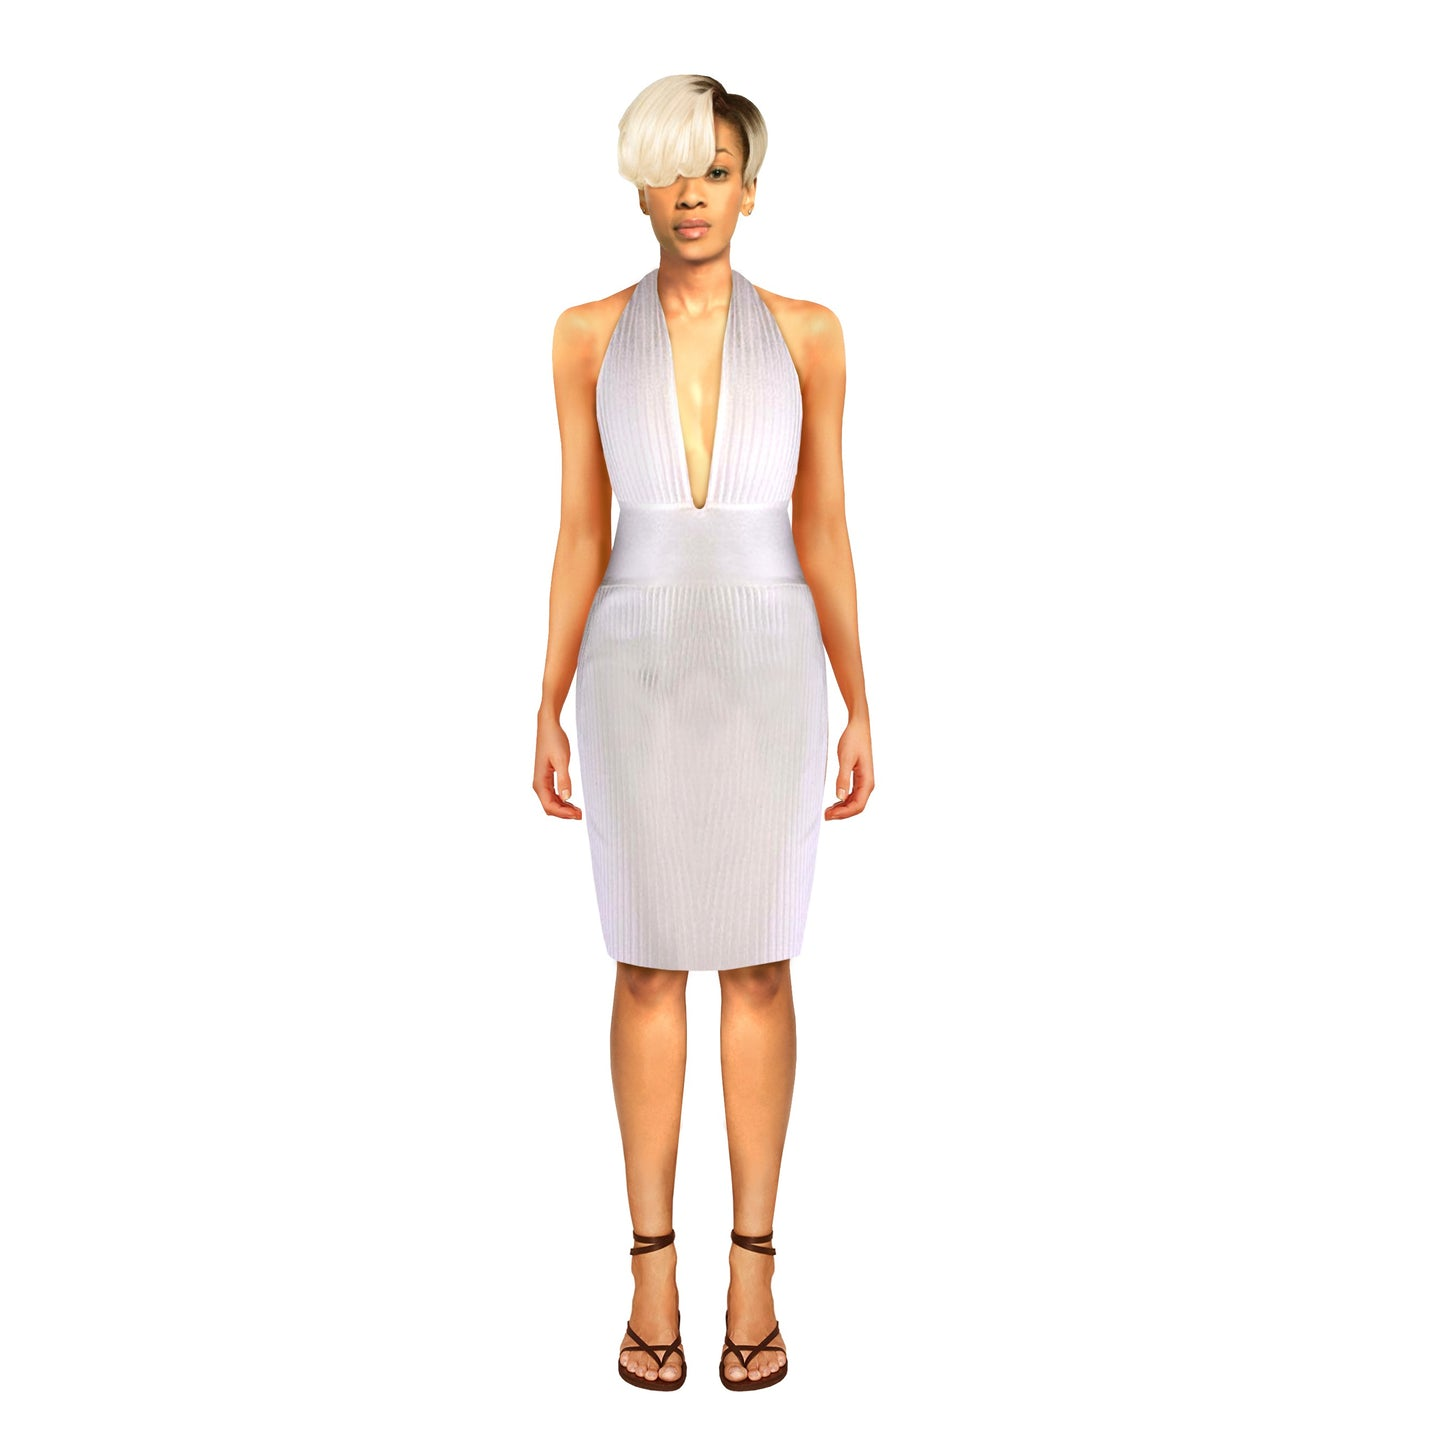 Honey Dress by House of Perris is demure Merilyn inspired little dress.